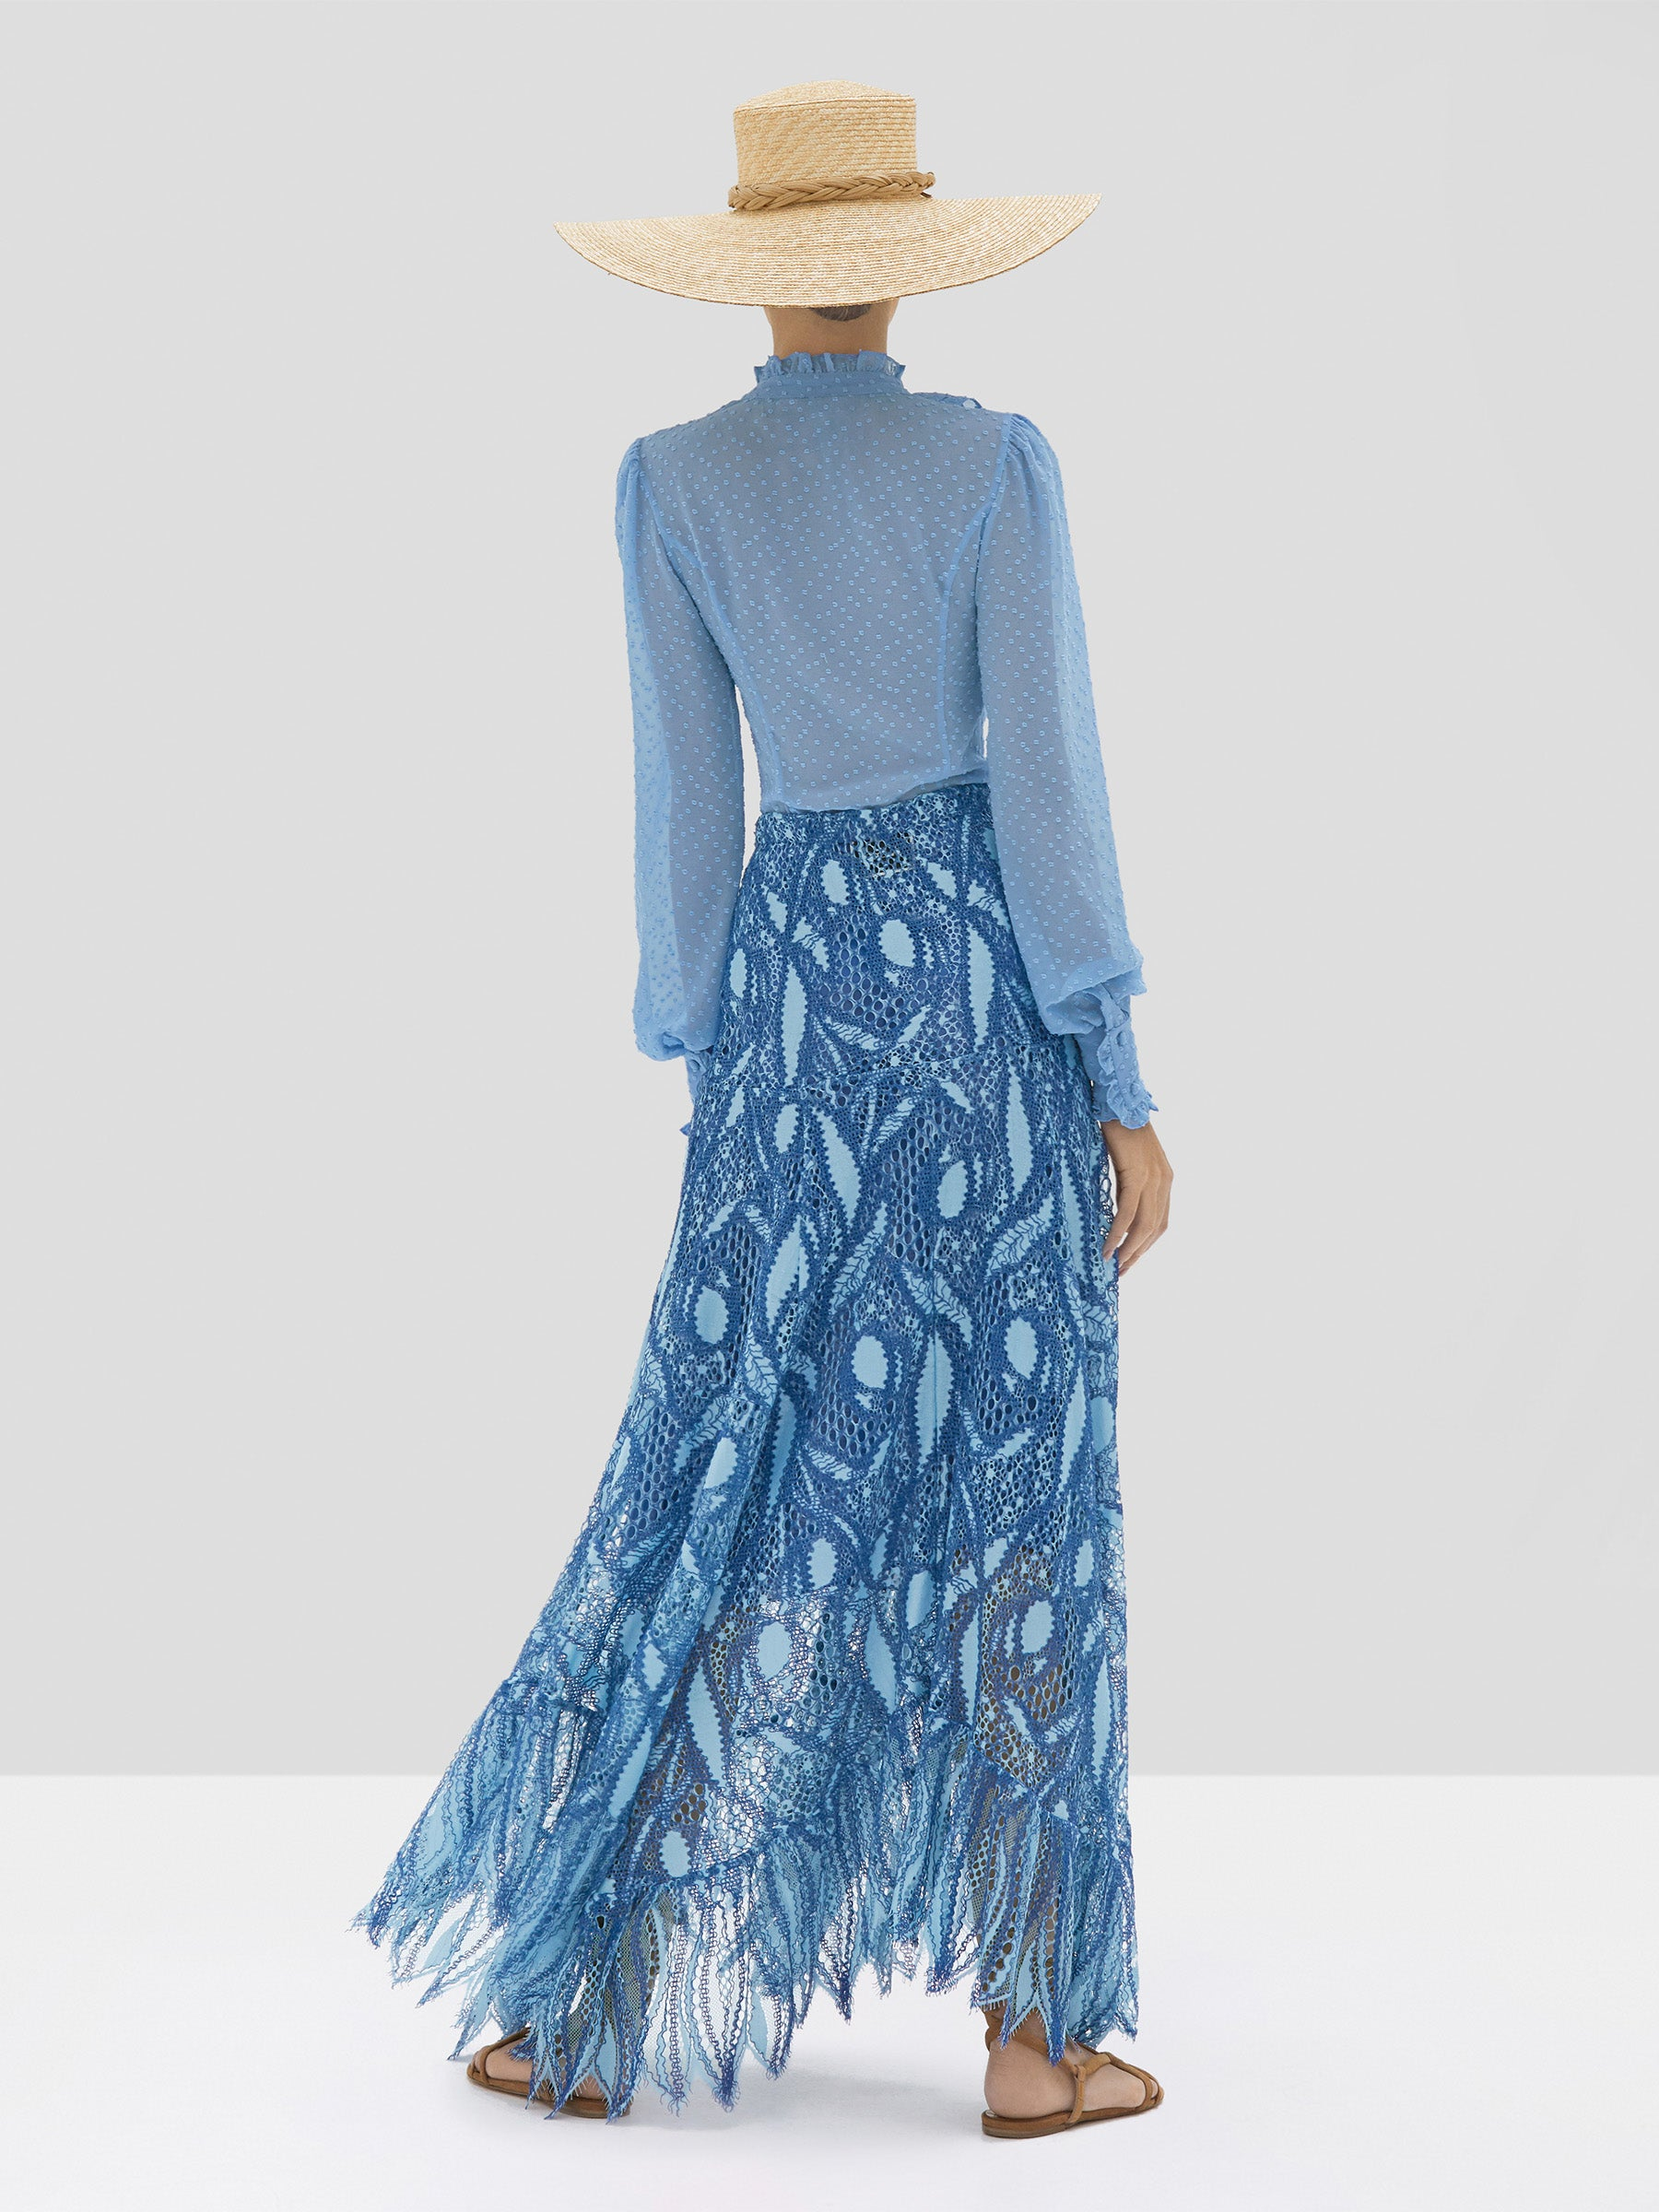 Alexis Benham Top and Kauri Skirt in Blue Lace Embroidery from Spring Summer 2020  - Rear View